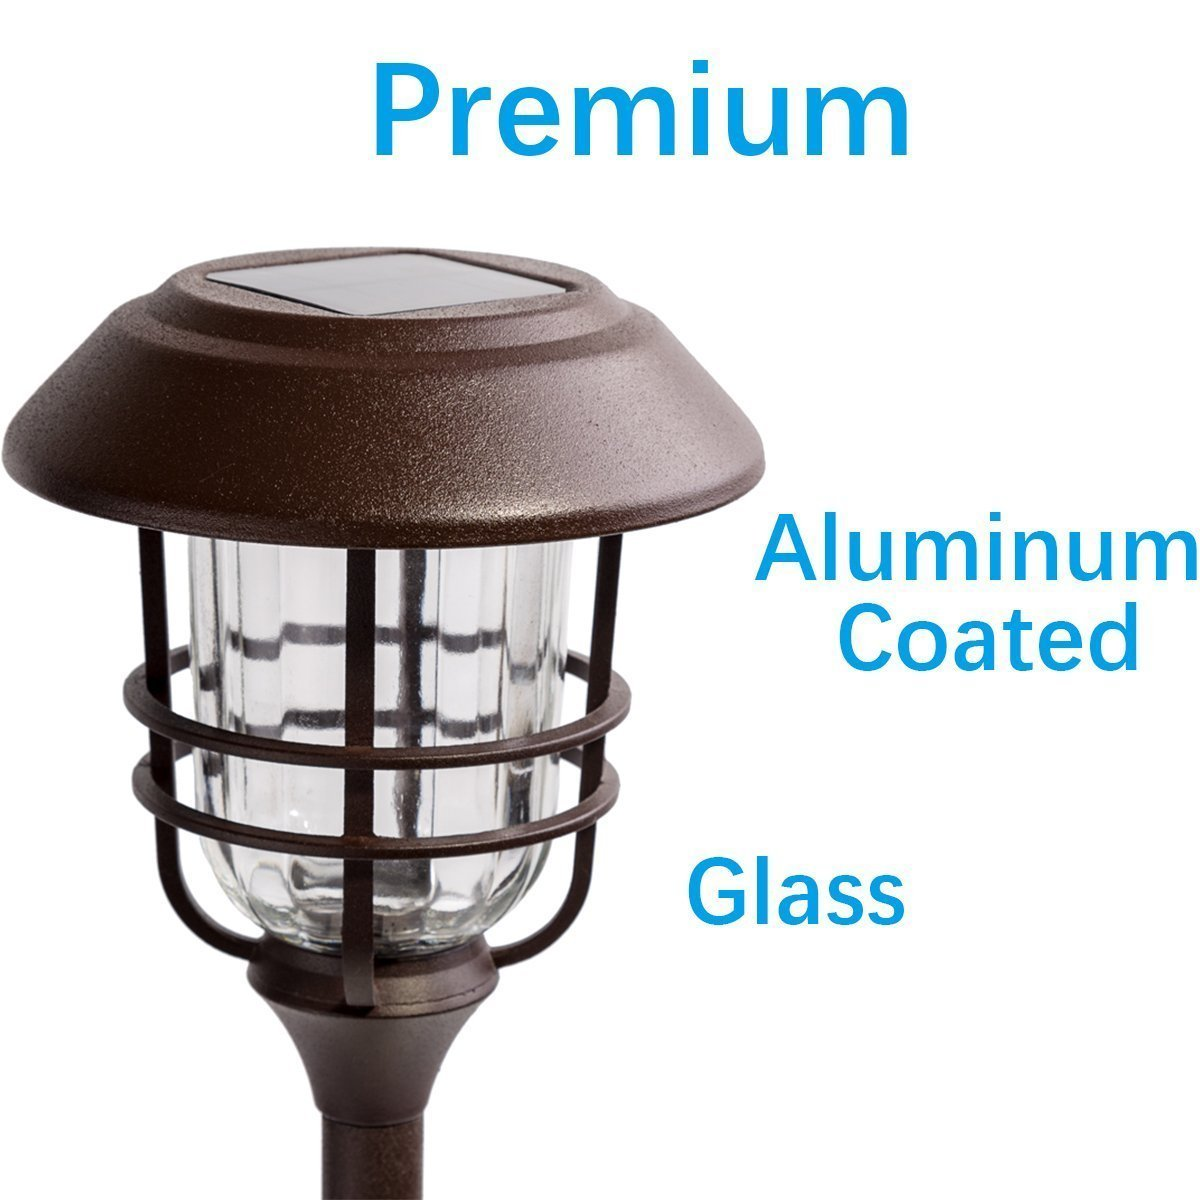 Solar Lights Outdoor Pathway - 4 Pack Bright Glass Solar Powered LED Garden Path Landscape Lighting Bronze Powder Coated Die Casting Aluminum Patio Path Lights Heavy-Duty for All Weather (Bronze) by Sunwind (Image #3)